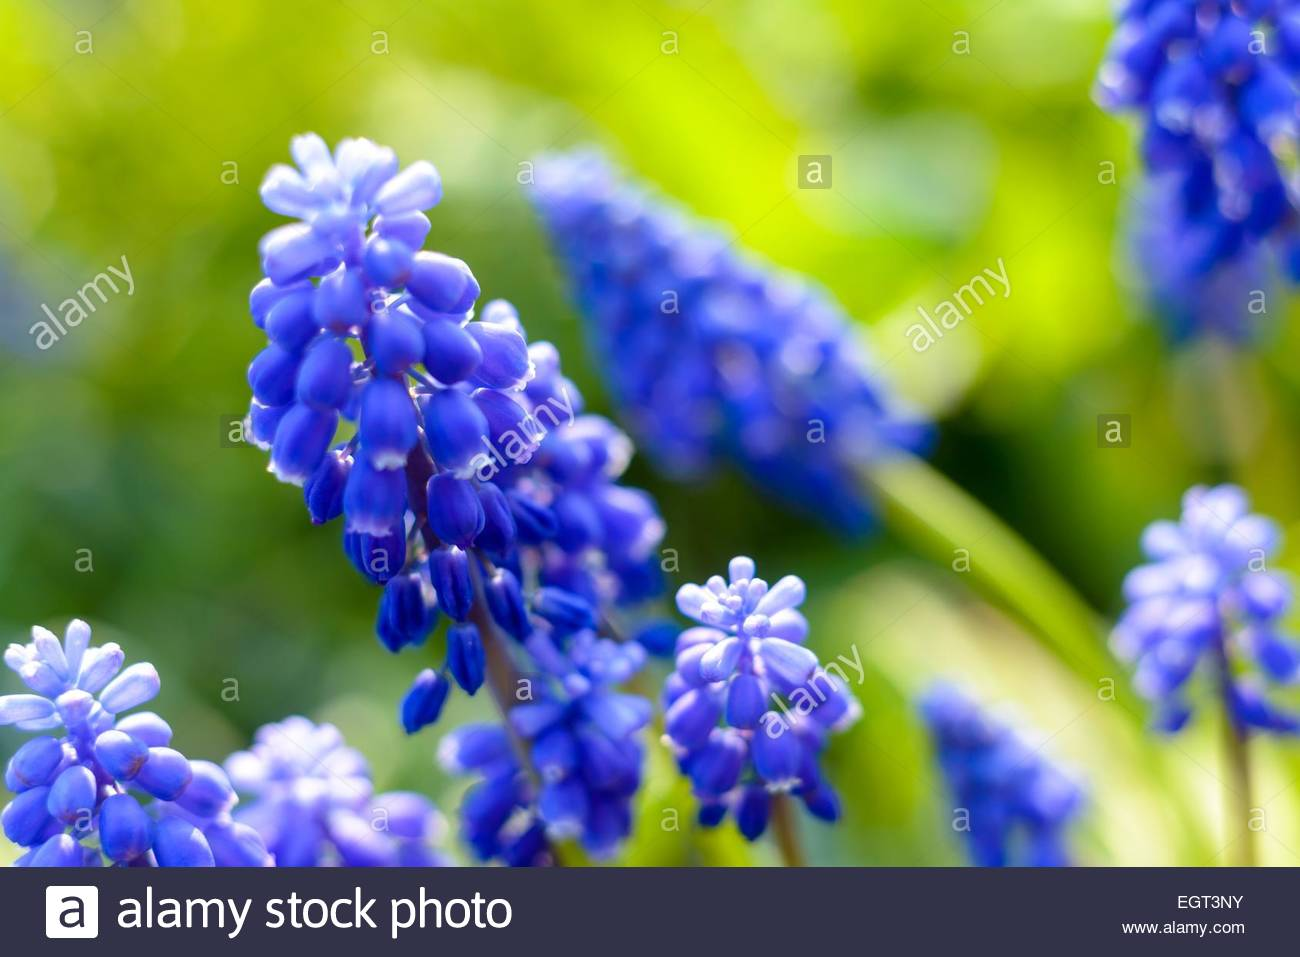 Small blue flowers at spring stock photo 79205783 alamy small blue flowers at spring mightylinksfo